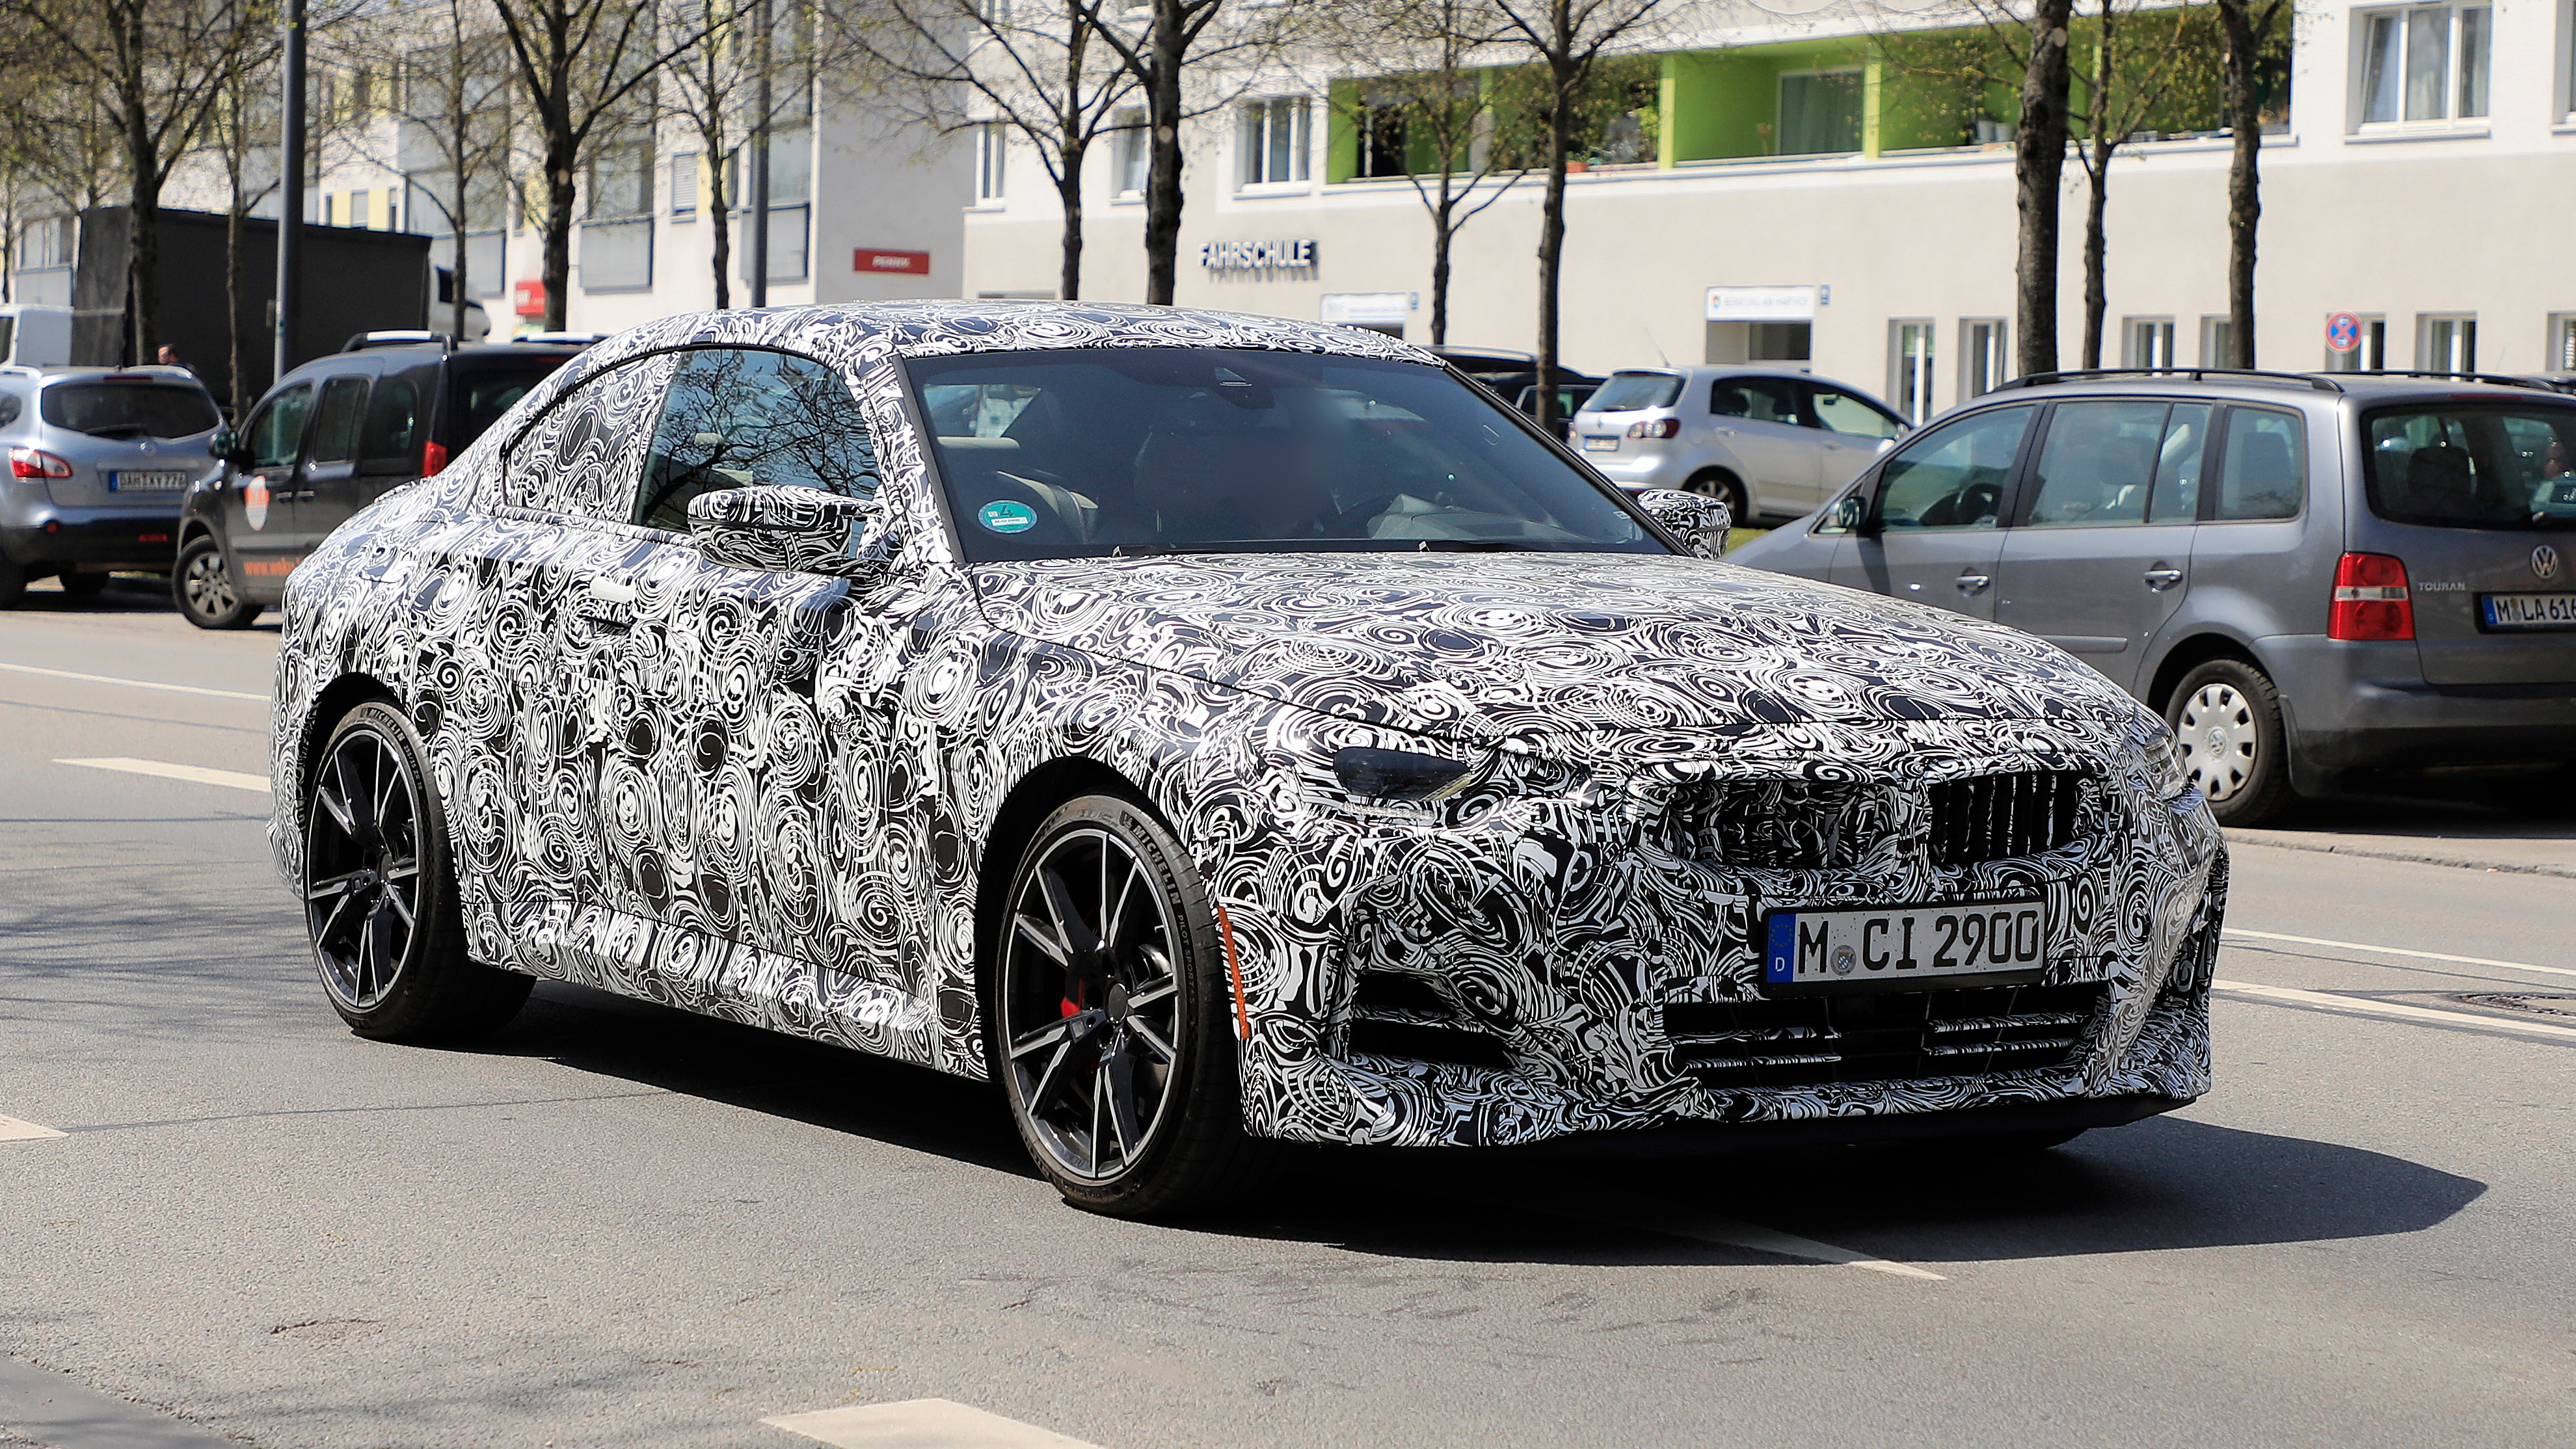 New 2021 BMW 2-series spied in M240i form